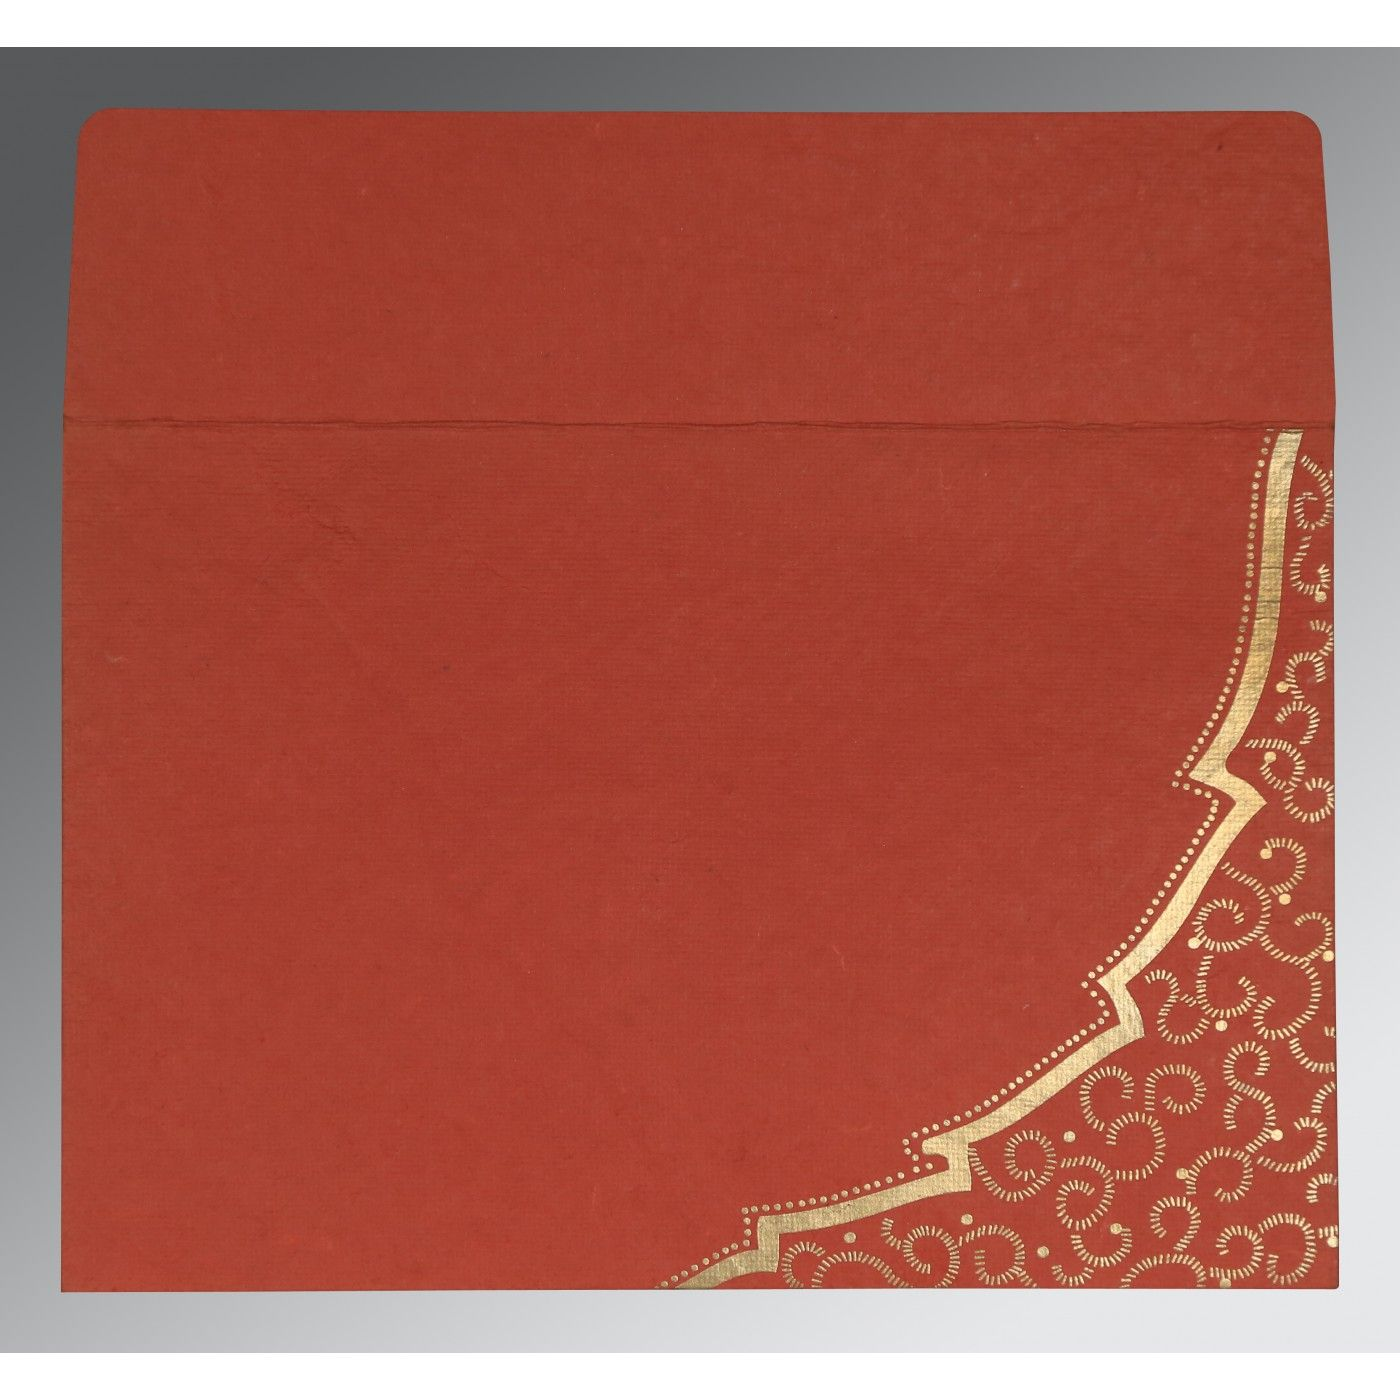 BRICK RED HANDMADE COTTON FLORAL THEMED - FOIL STAMPED WEDDING CARD : CW-8219I - IndianWeddingCards